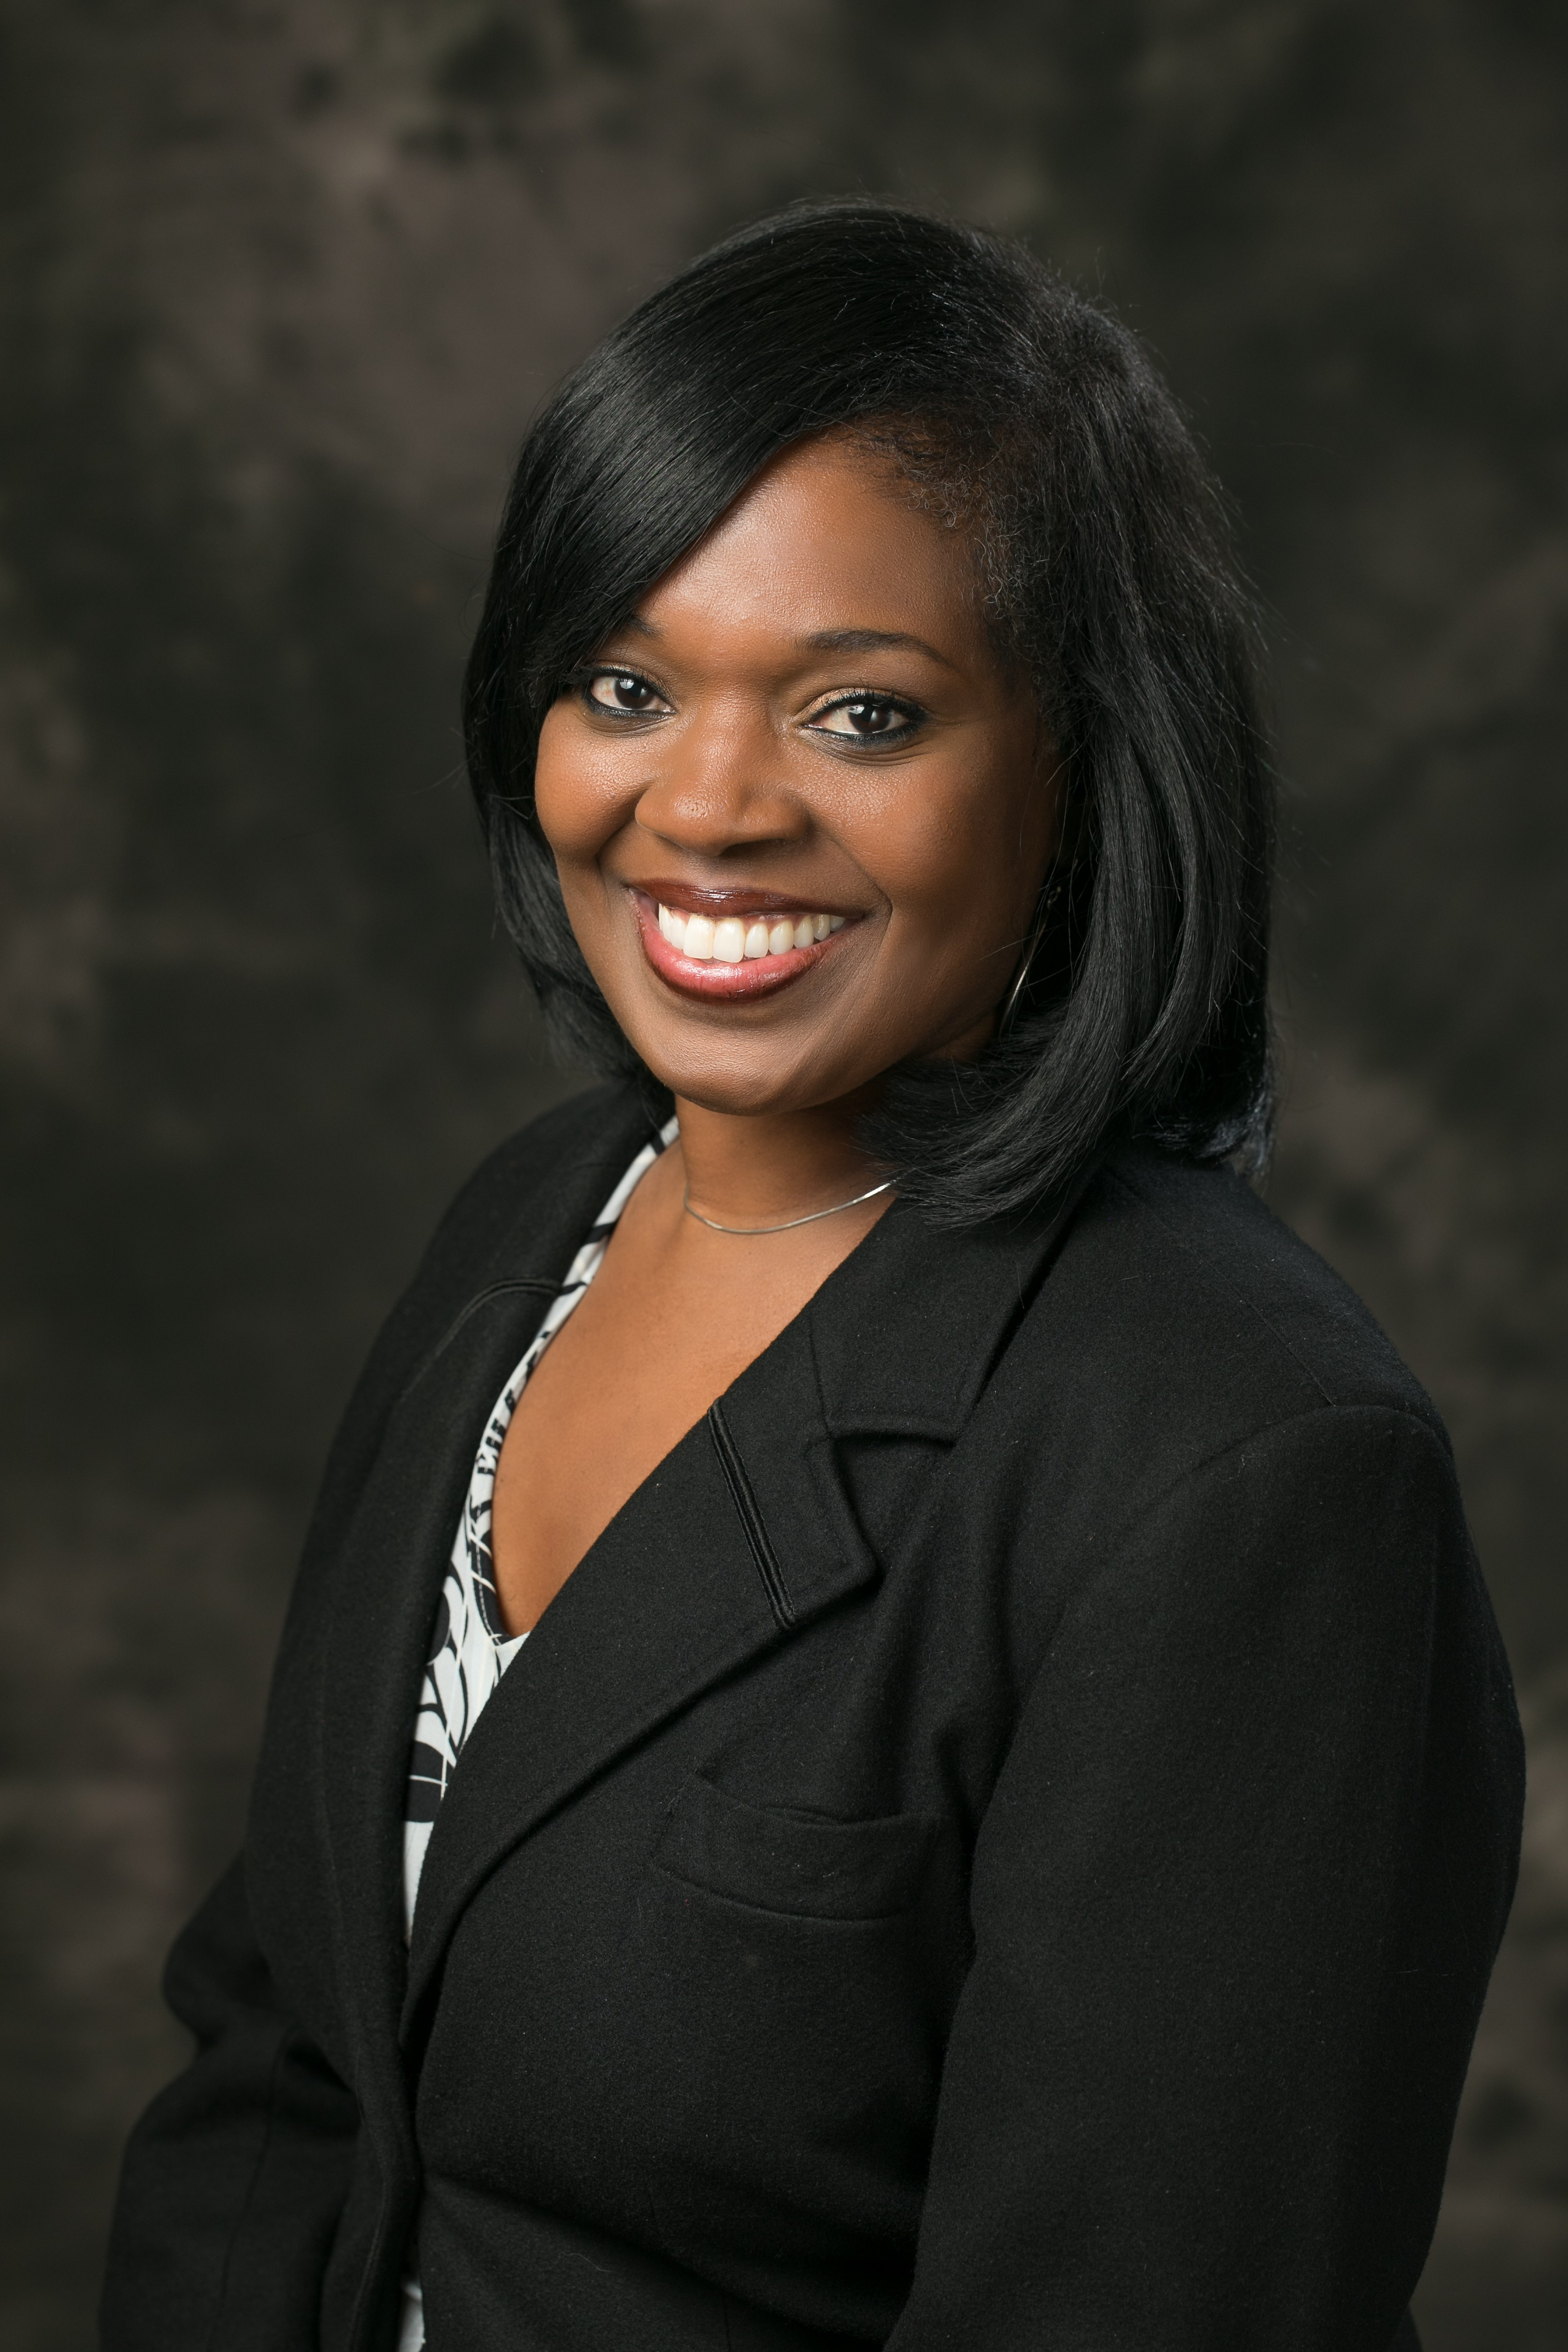 Picture of Deputy Superintendent Sharrece Farris smiling